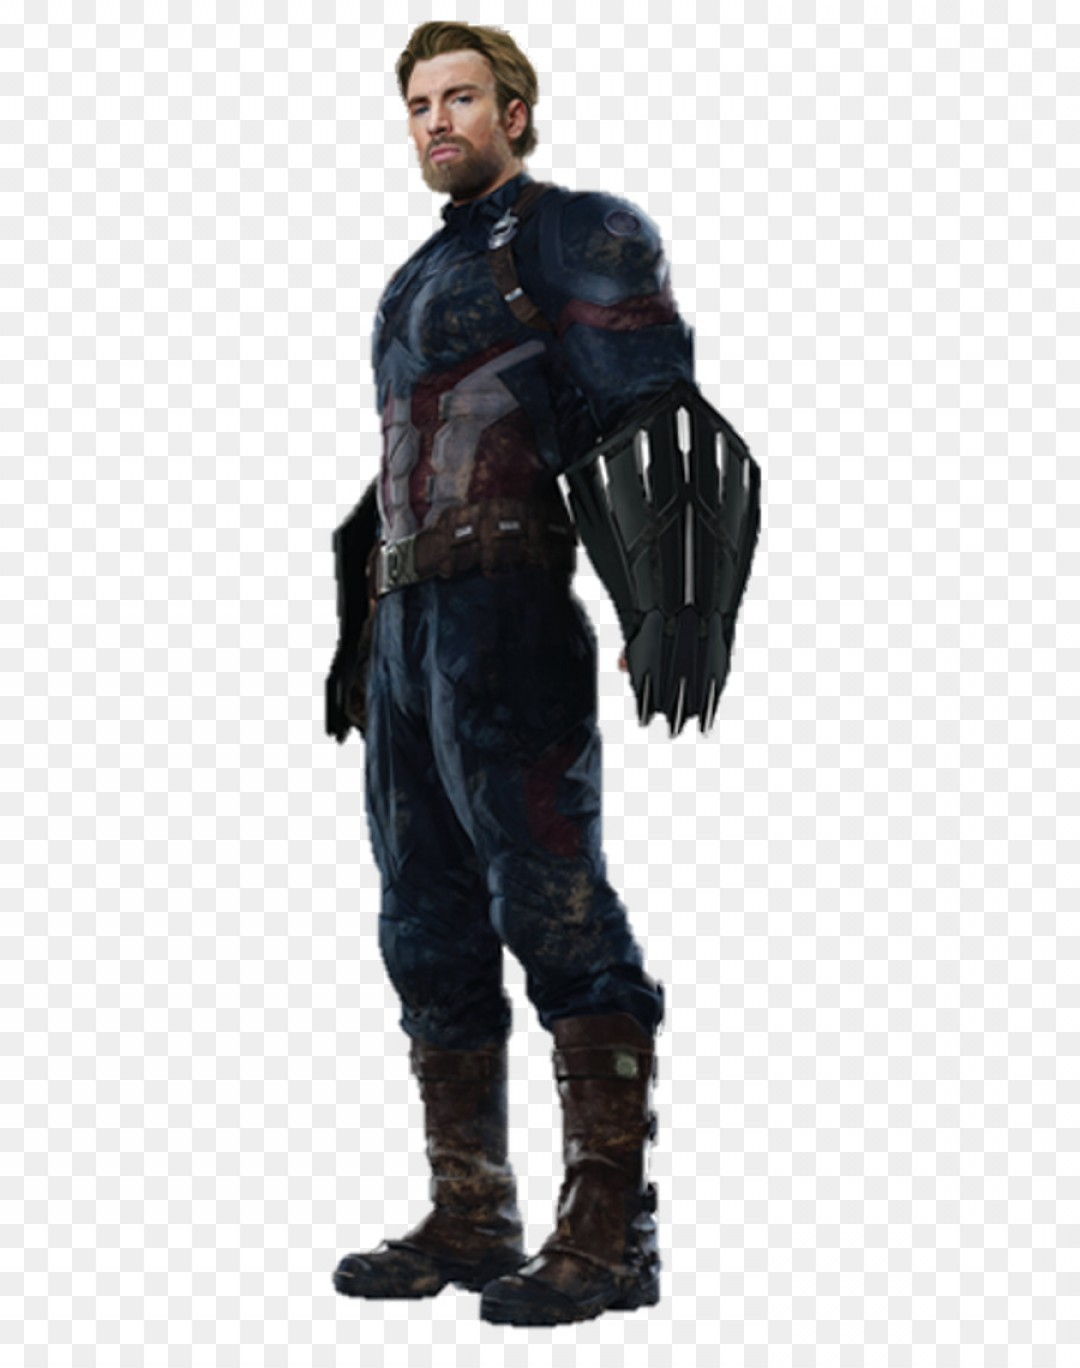 Png Avengers Infinity War Captain America Spider Man T.